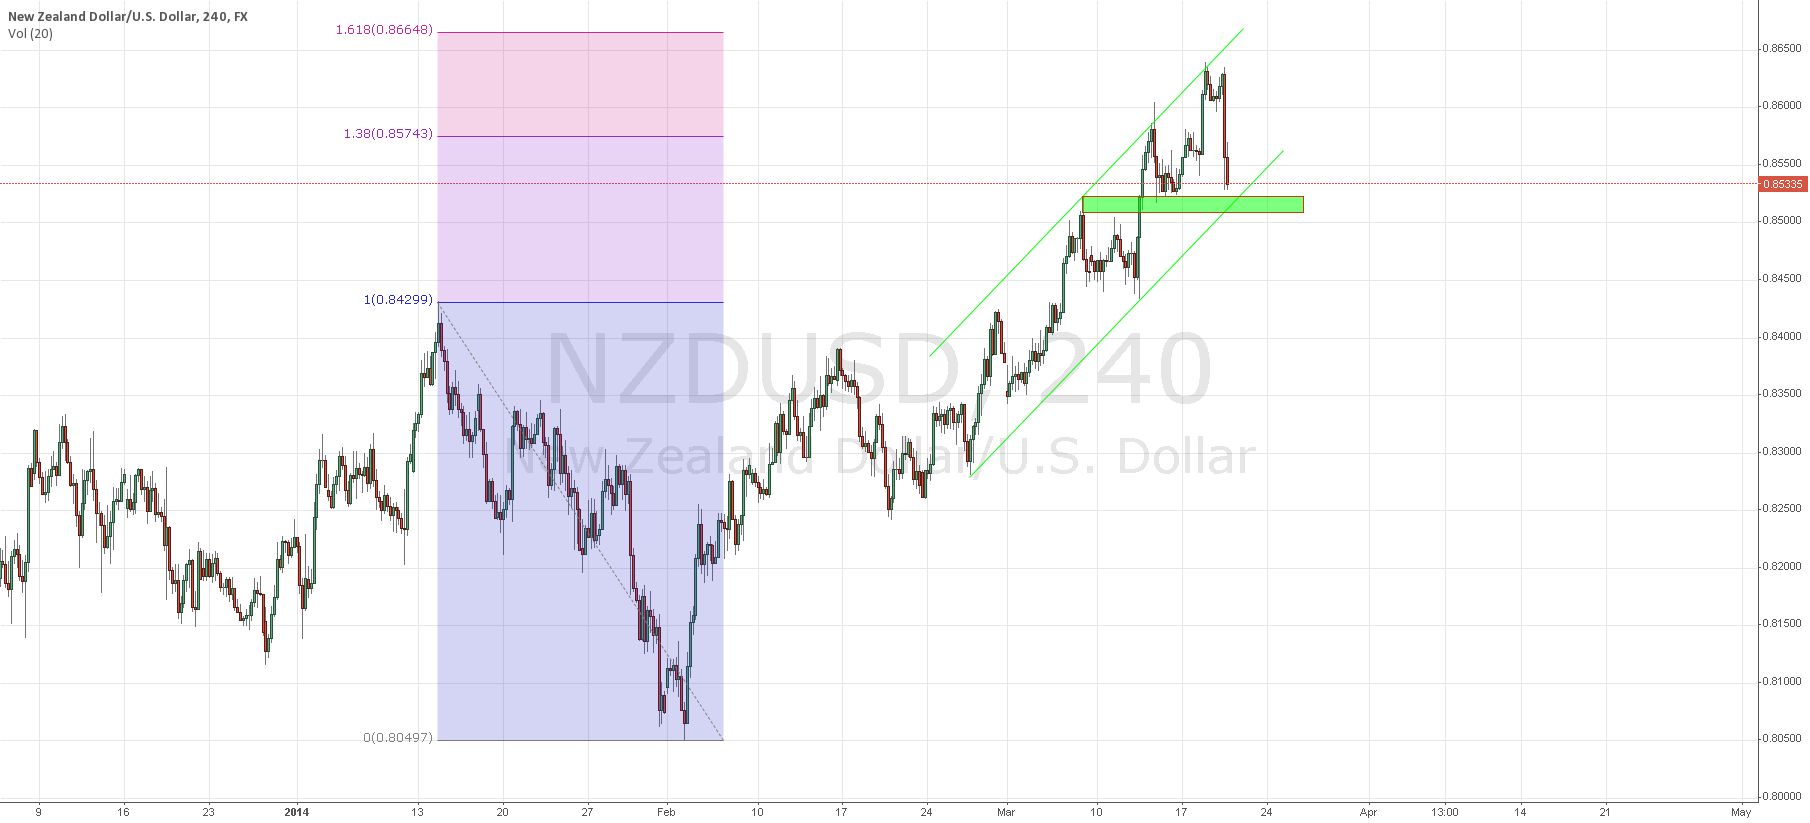 NZDUSD short term long if low 0.85XX support holds